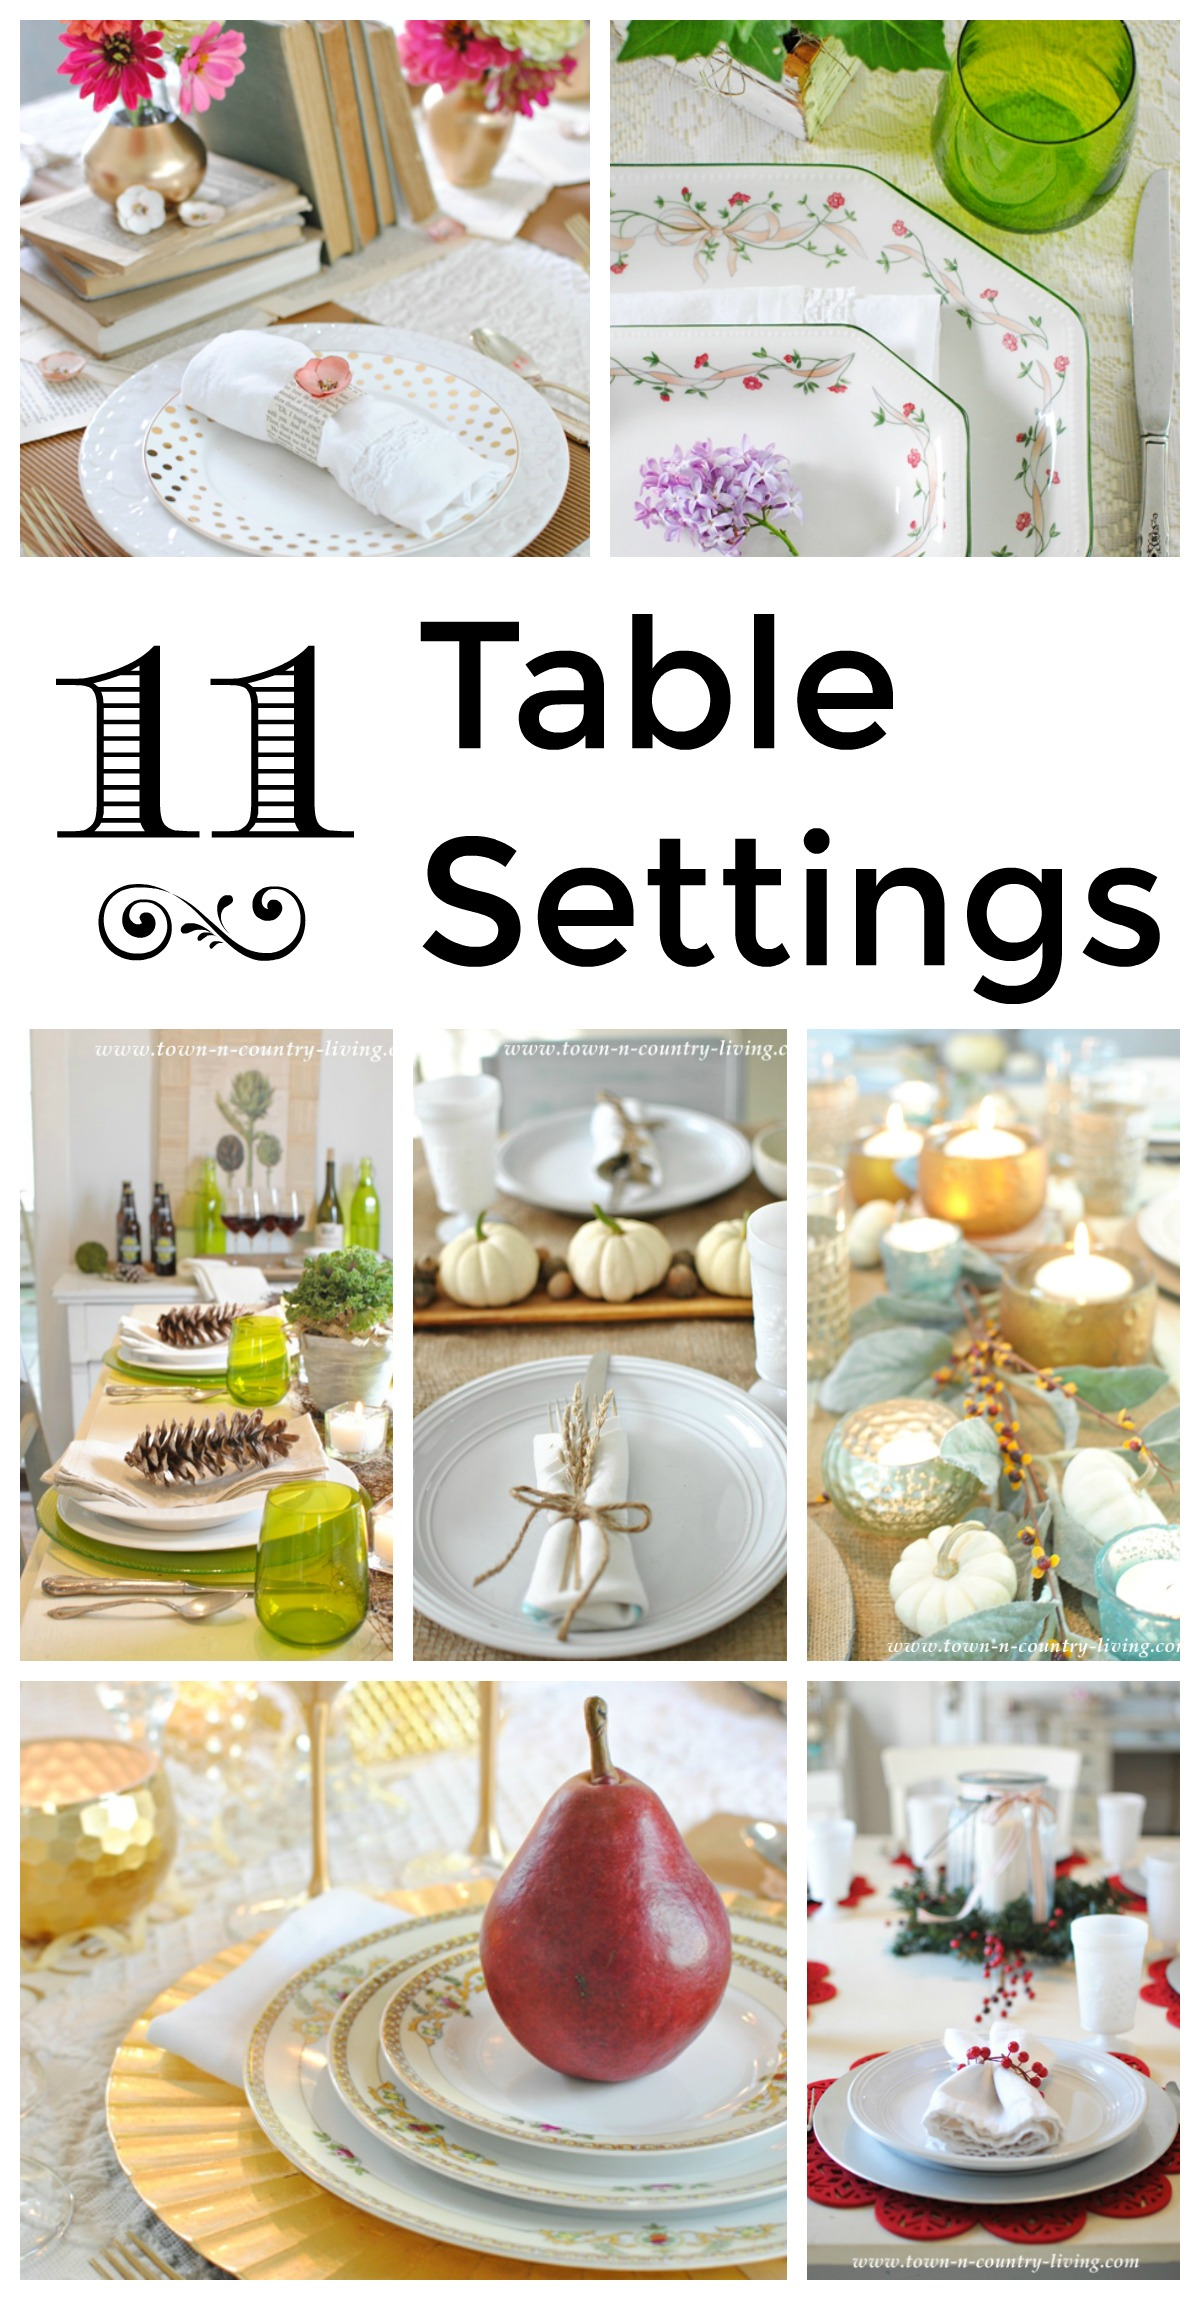 11 table settings for every occasion town country living - Html table options .  sc 1 st  Edfos.com & Matrix 42 Standing Height Rectangular Table L Size And - Html Table ...